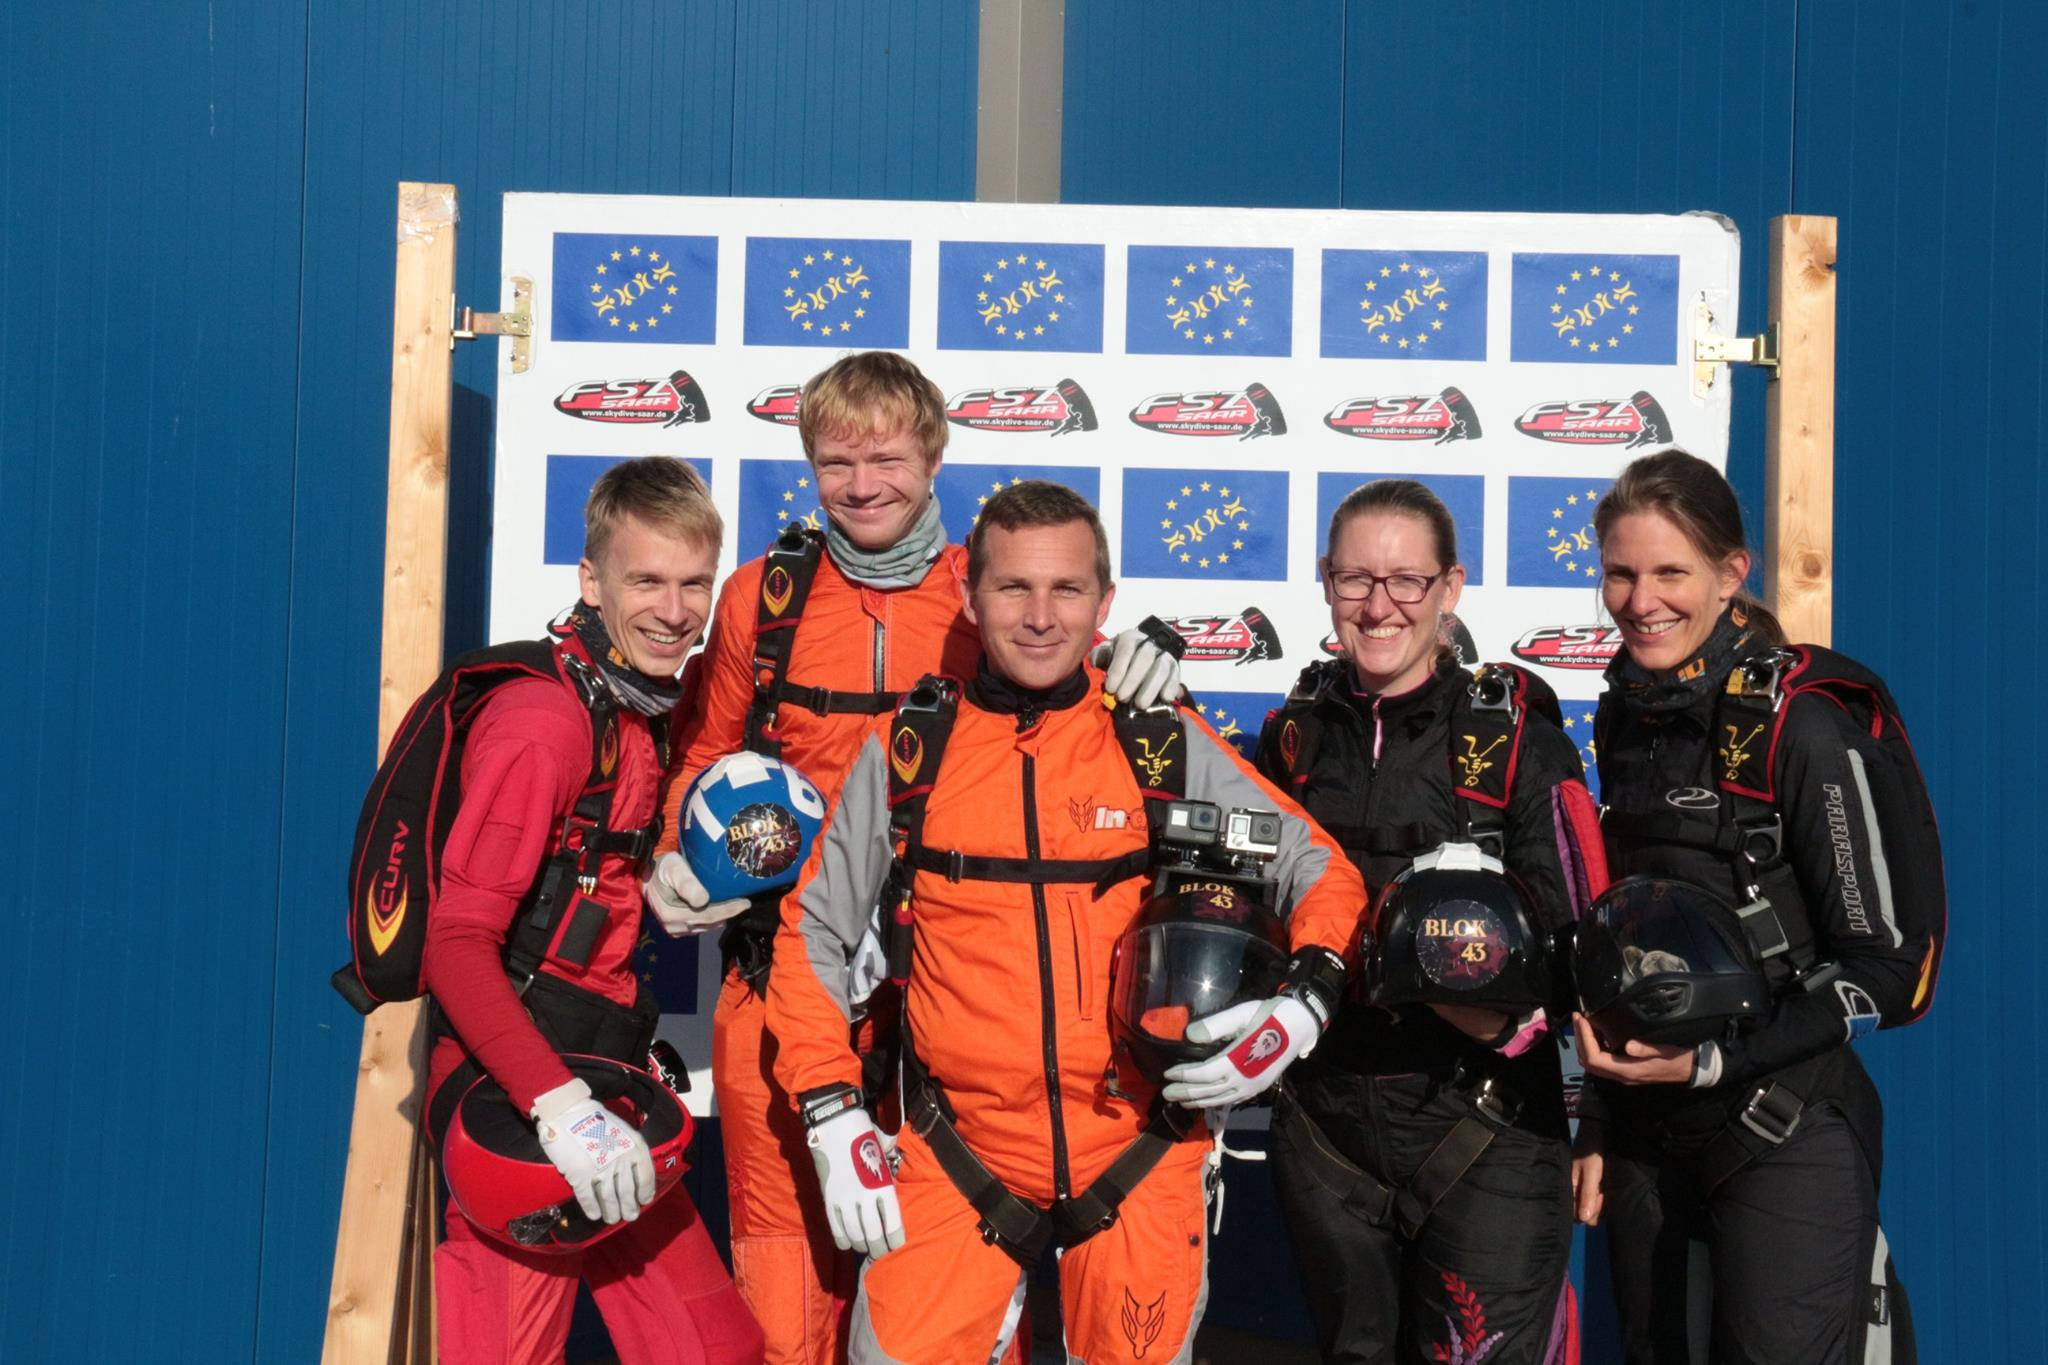 Blok43 skydiving team